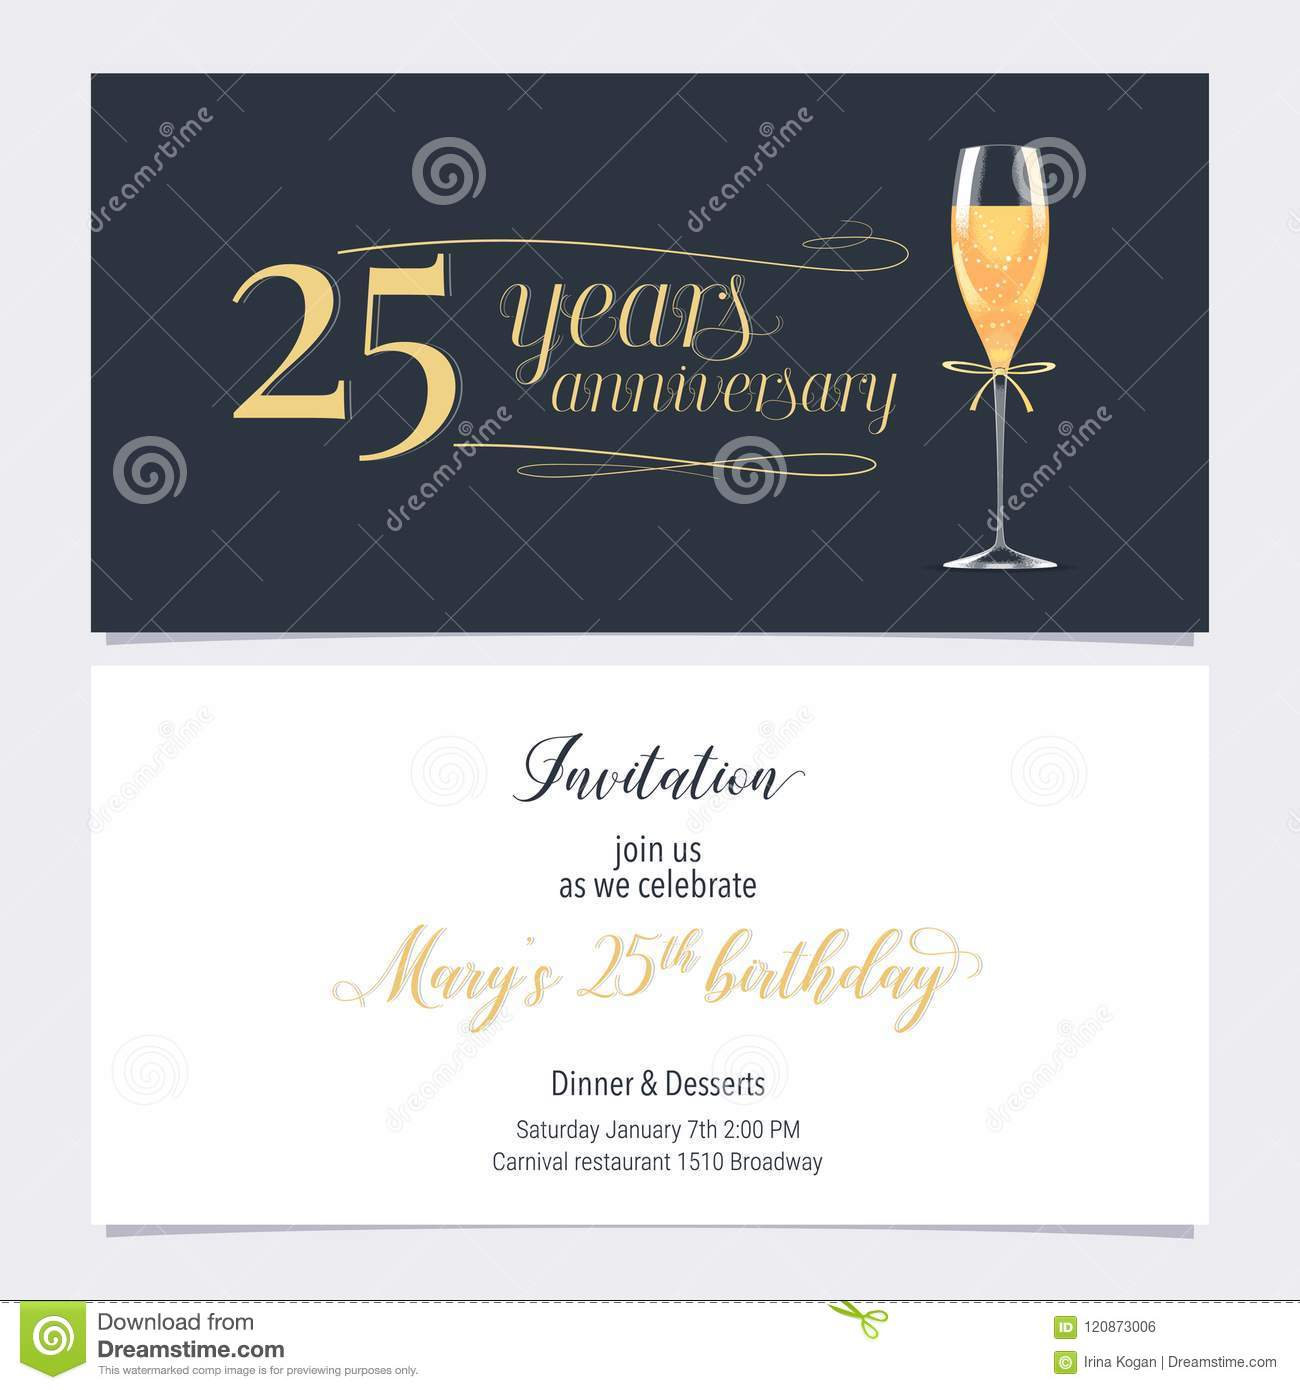 25 Years Anniversary Invitation Vector Illustration Graphic Design Element With Glass Of Champagne For 25th Birthday Card Party Invite